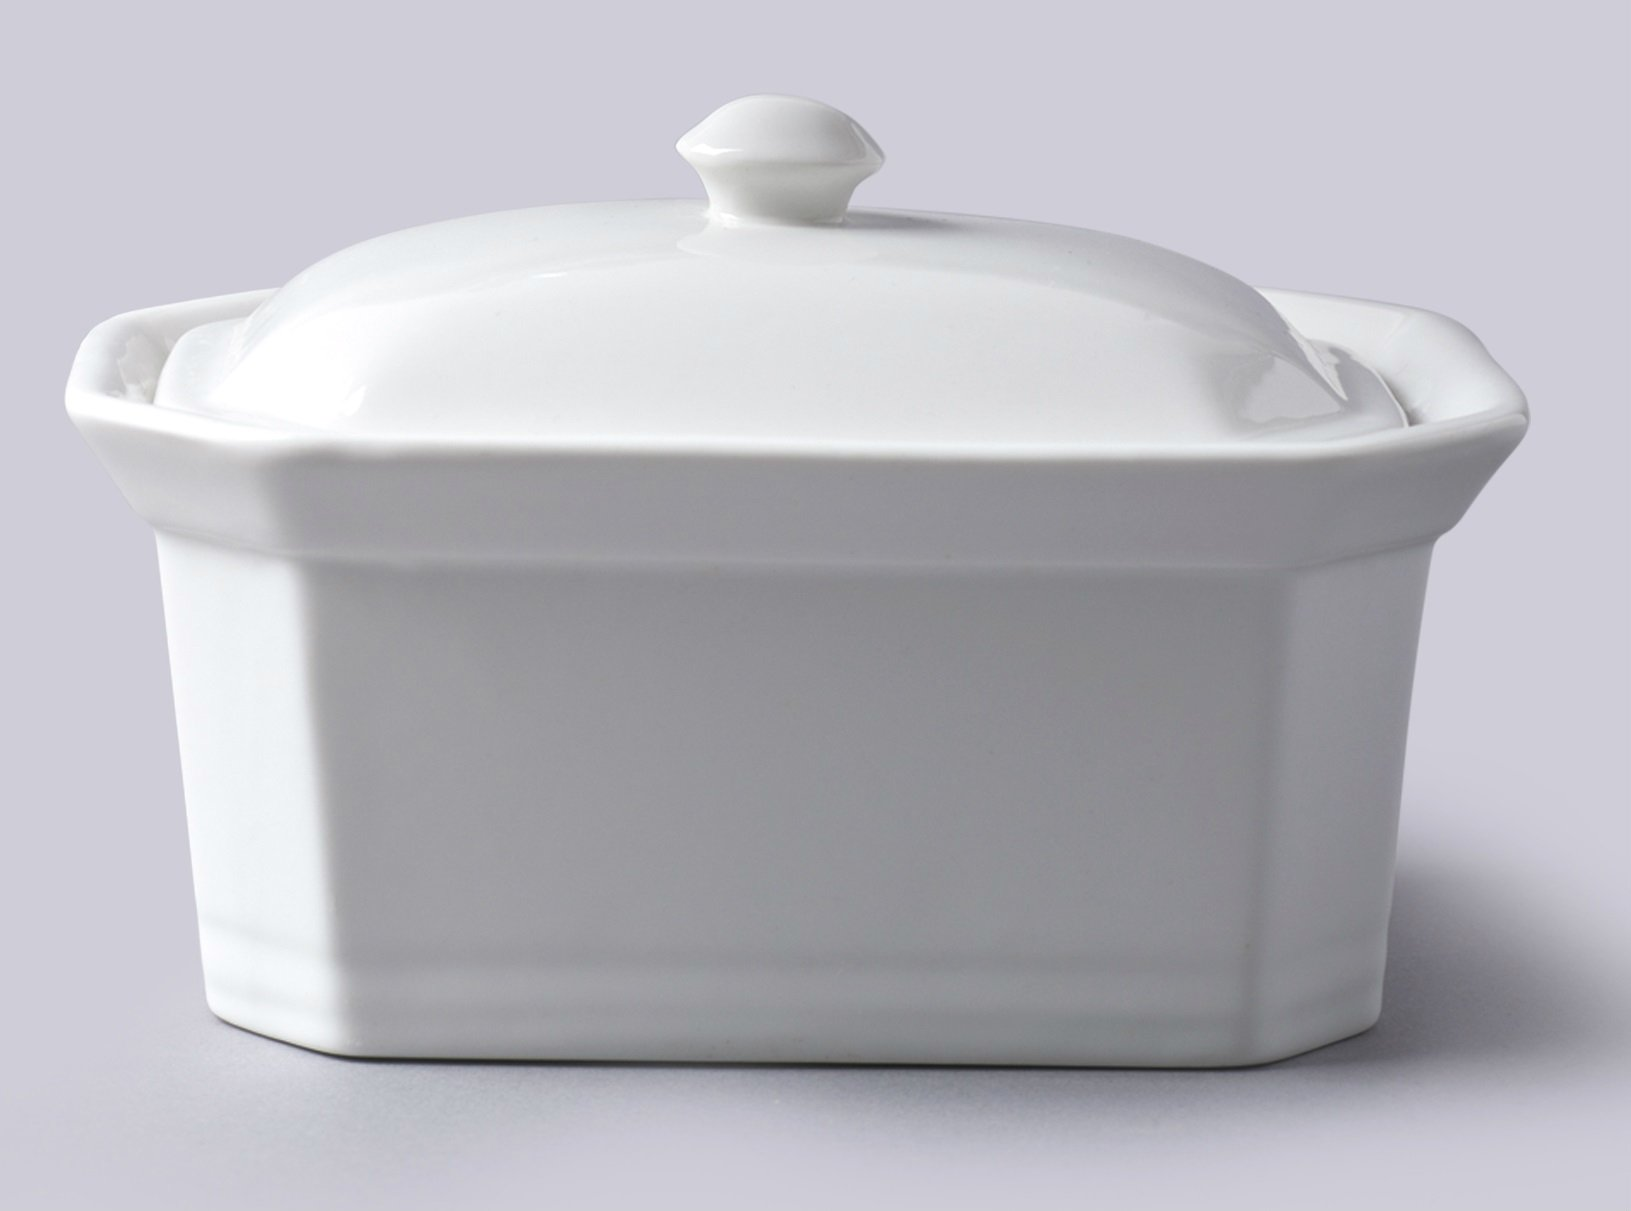 WM Bartleet & Sons 1750 T184 Butter/Terrine Dish with Lid, White by WM Bartleet & Sons 1750